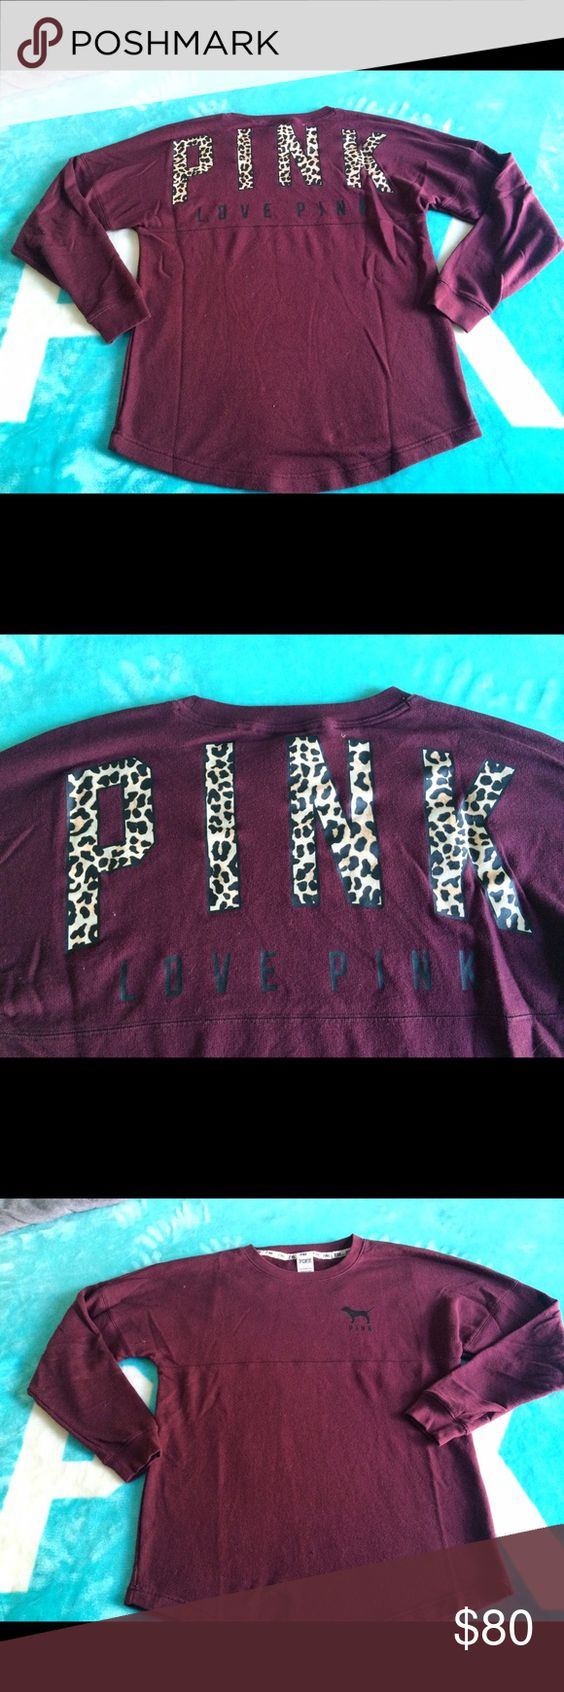 RARE HTF Cheetah Pink Maroon Crew Size S but oversized to fit a M, washed once but never wore, brand new condition price is firm!! NO LOWEST NO TRADES! CHEAPER ON Ⓜ️ercari!! PINK Victoria's Secret Sweaters Crew & Scoop Necks